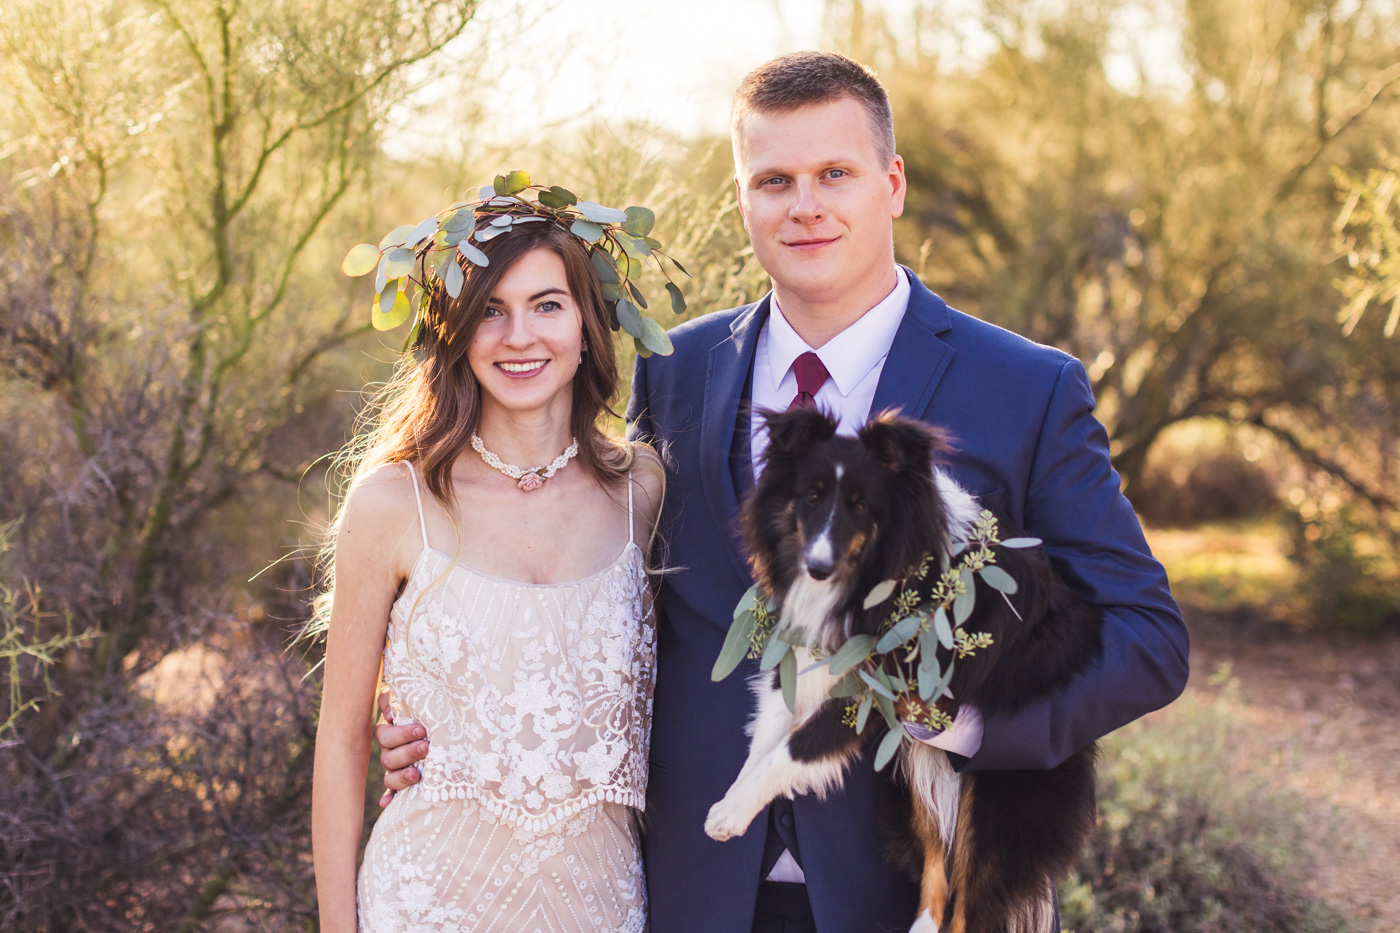 bride-groom-and-dog-at-desert-wedding